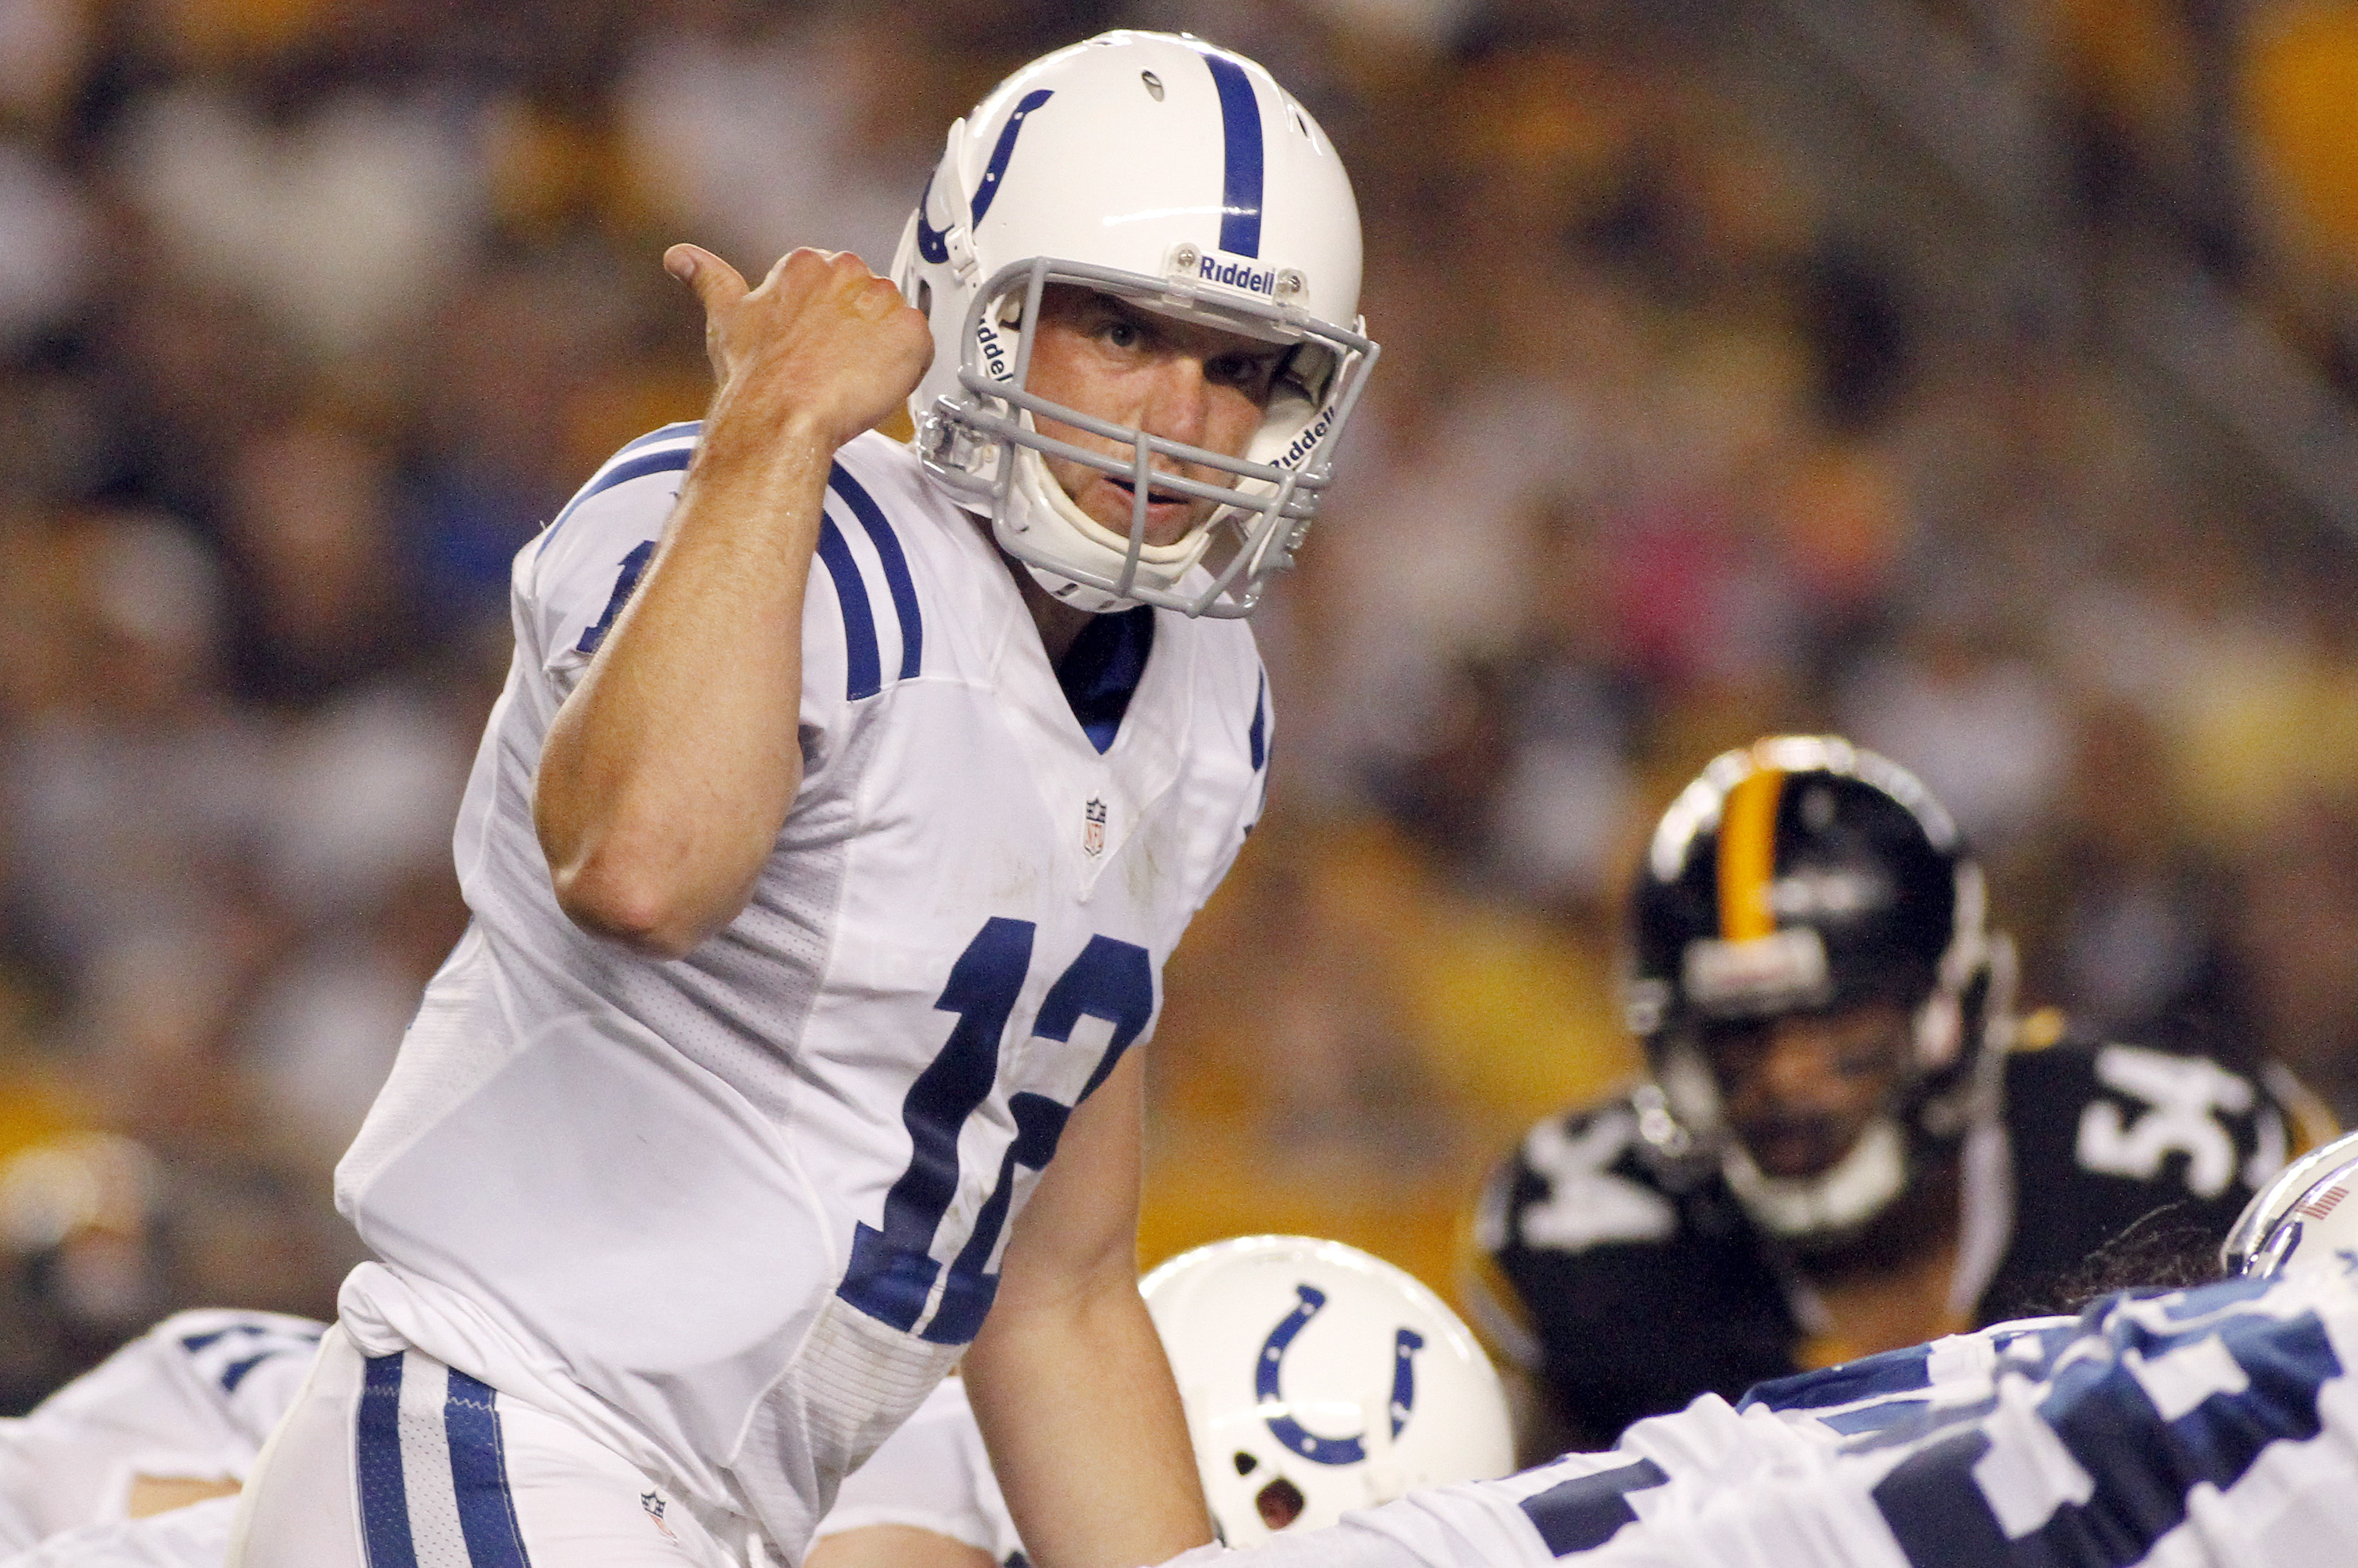 bc8d6fd1 Colts vs. Steelers: Andrew Luck Shows More Than Stats Against ...